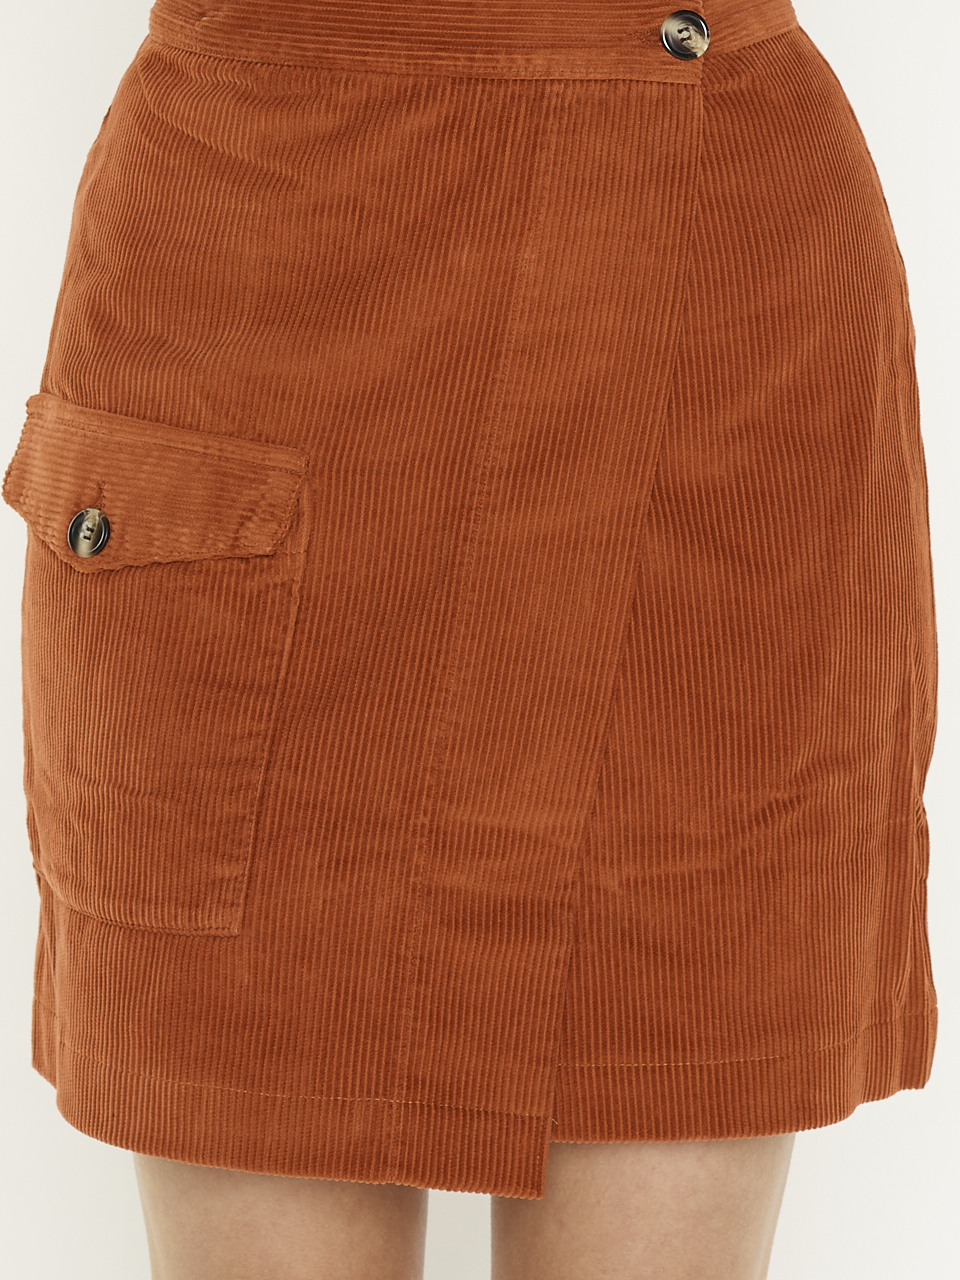 SKIRT SPICE IT UP